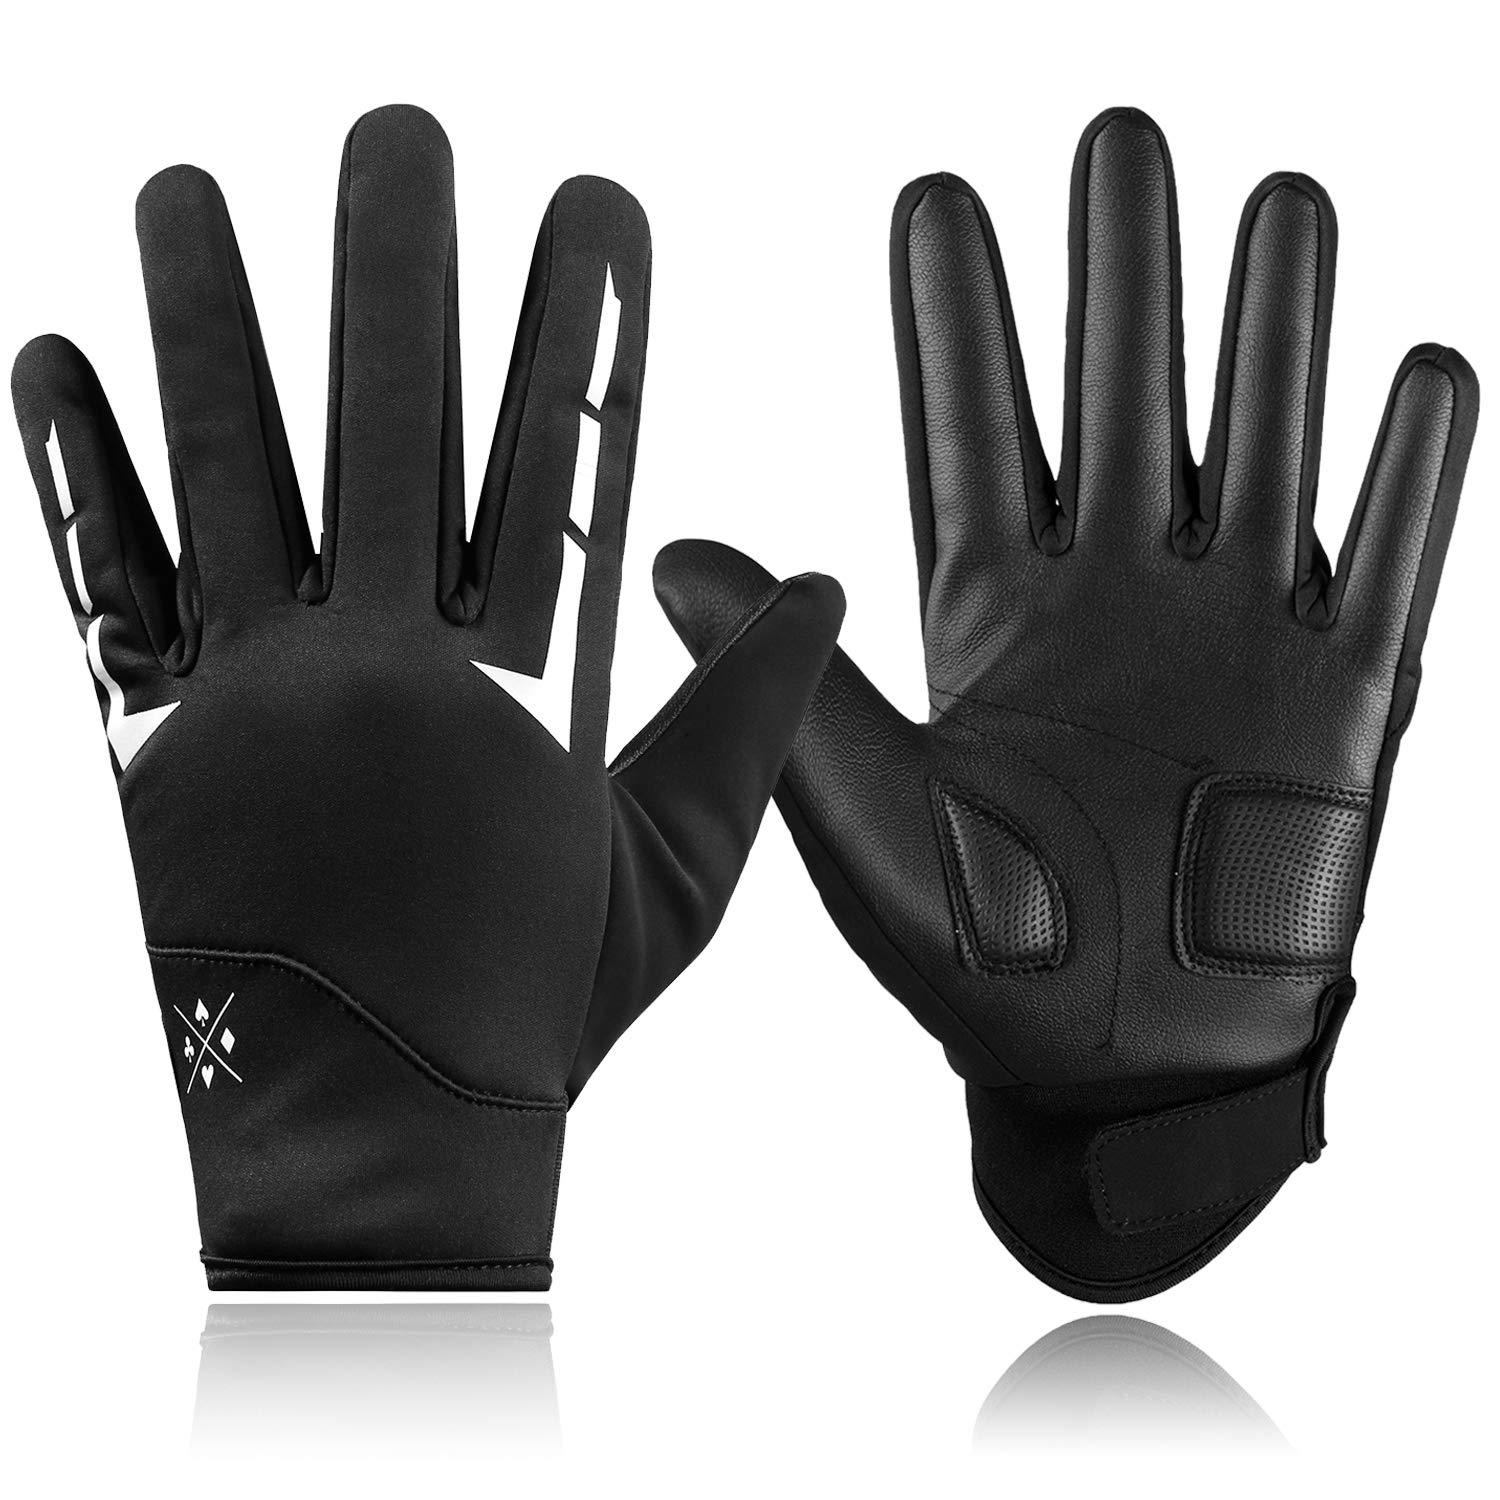 Letook Men's Padded Touch Screen PU Bike Gloves Waterproof Full Finger Cycling Riding Gloves